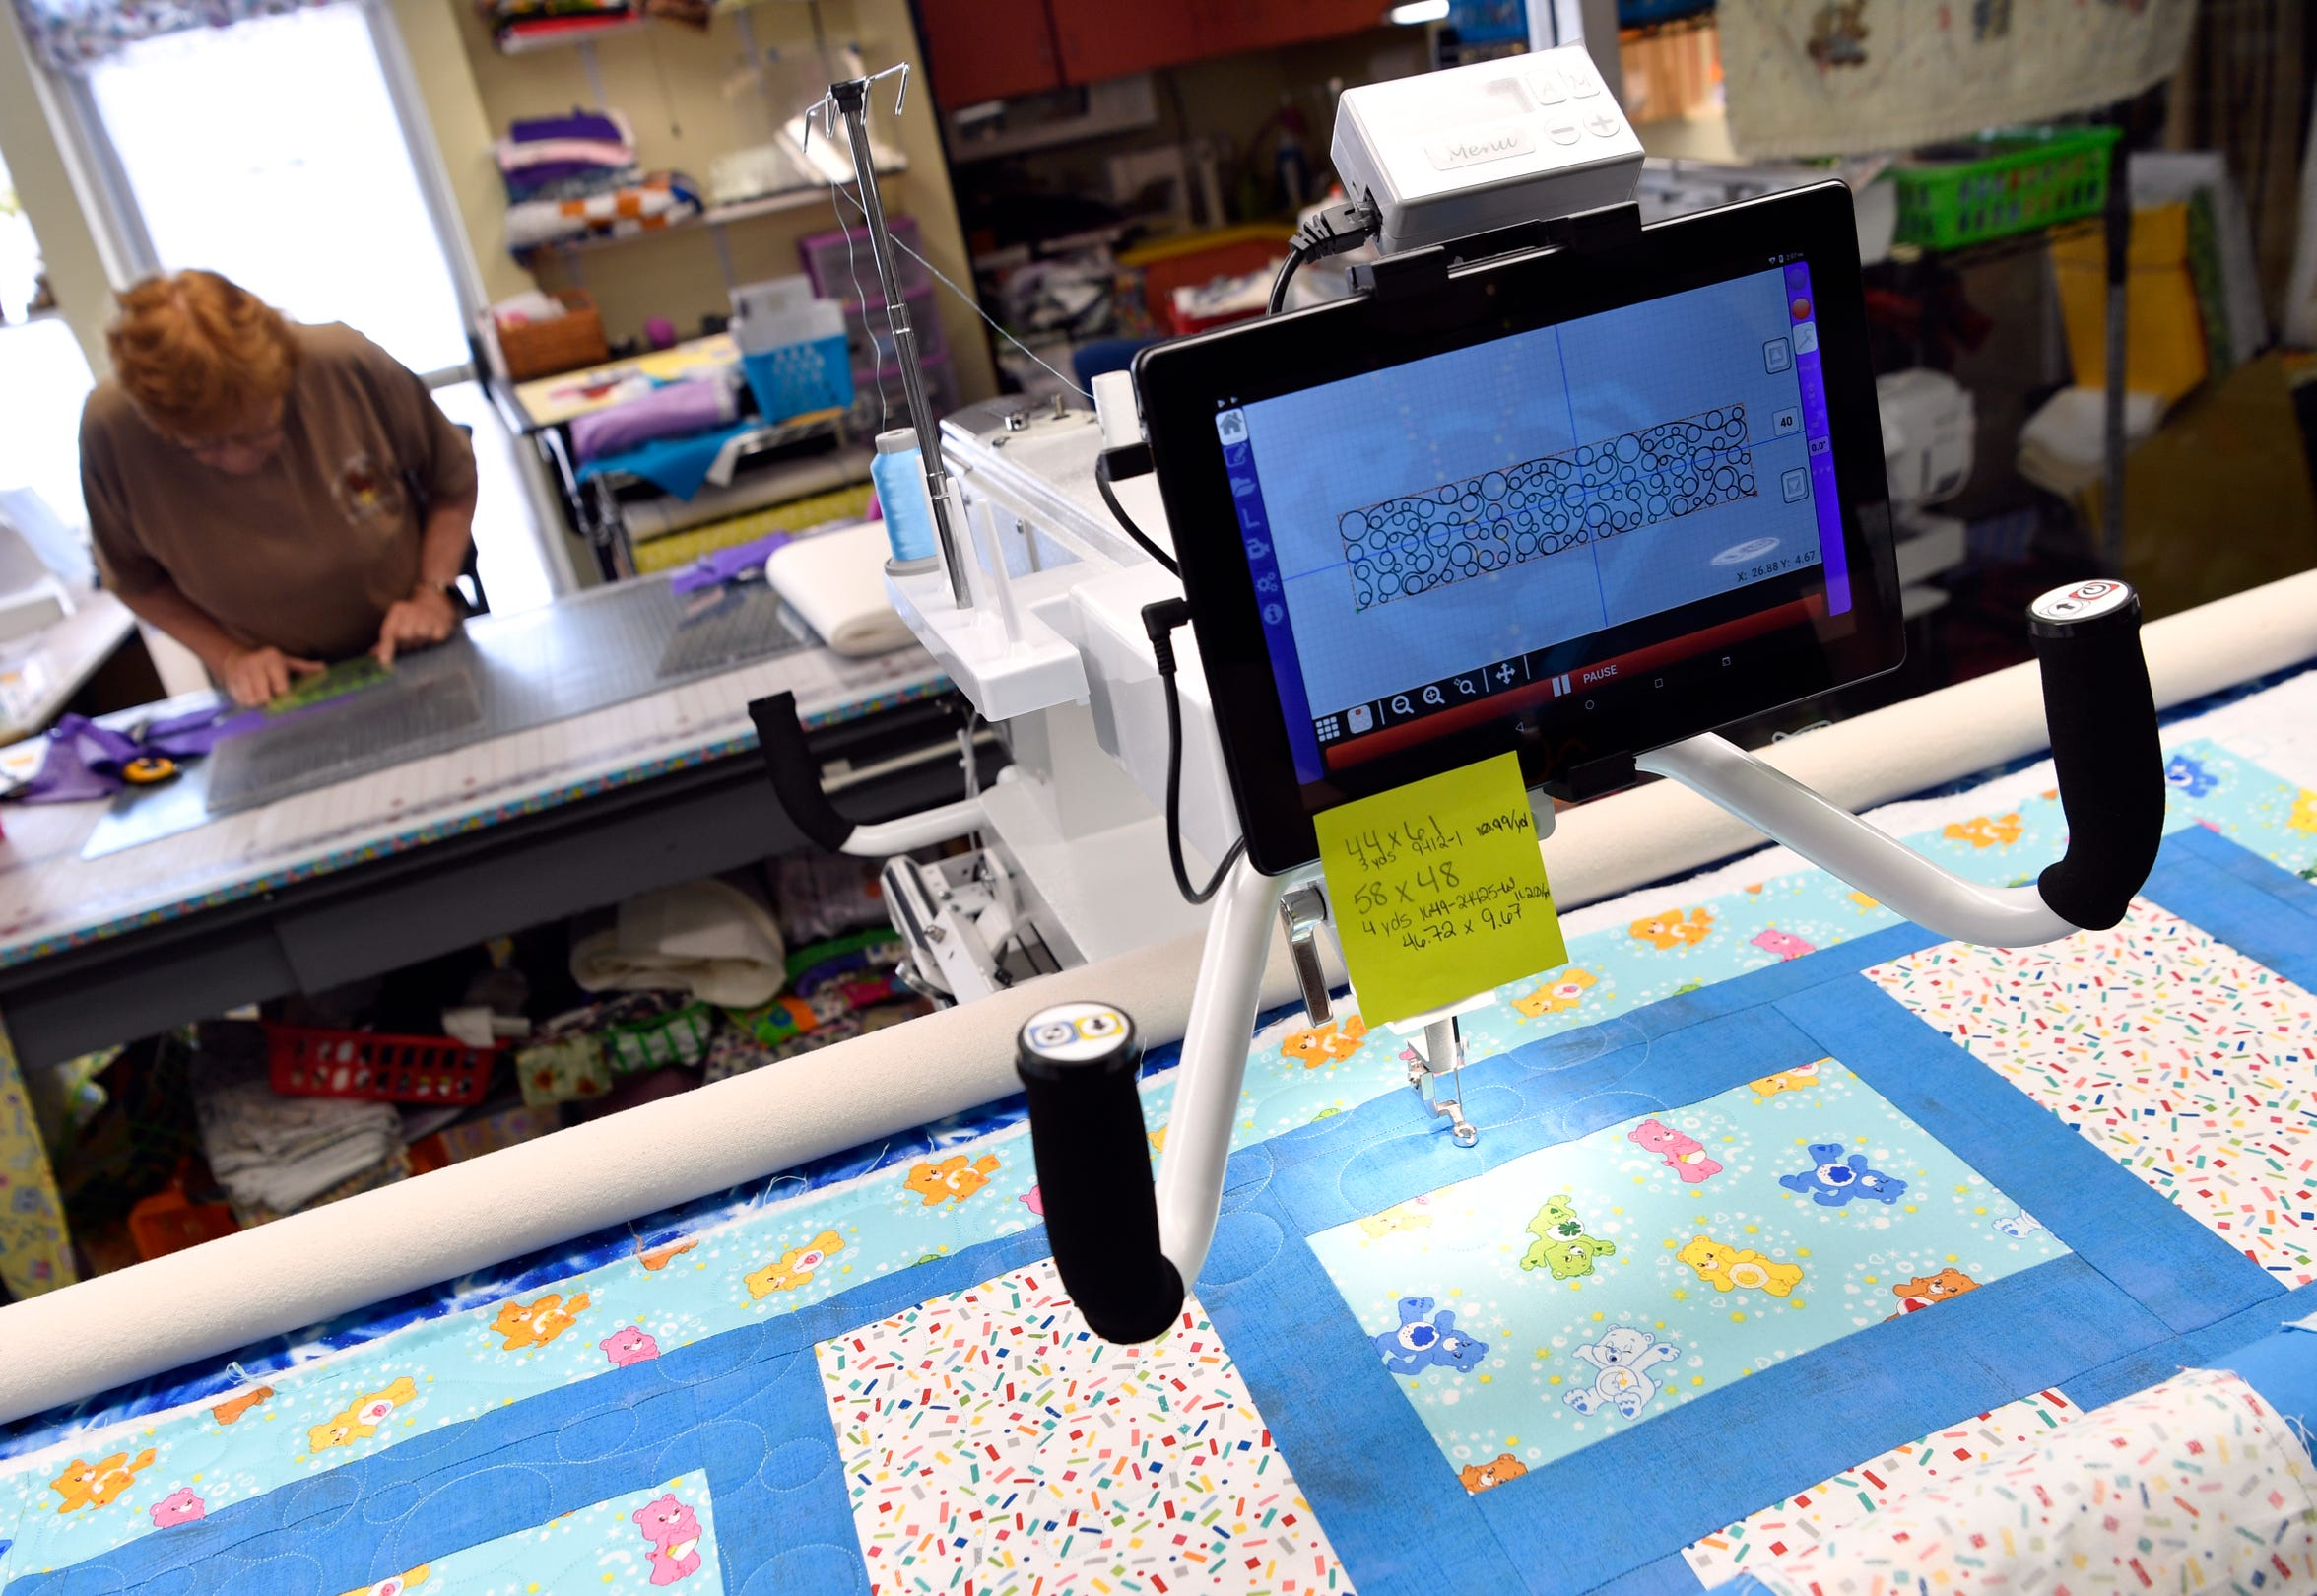 A computer-controlled machine stitches a pattern into a quilt as Linda Christiansen works on her own project in the background at R Quilt Haven on May 14.